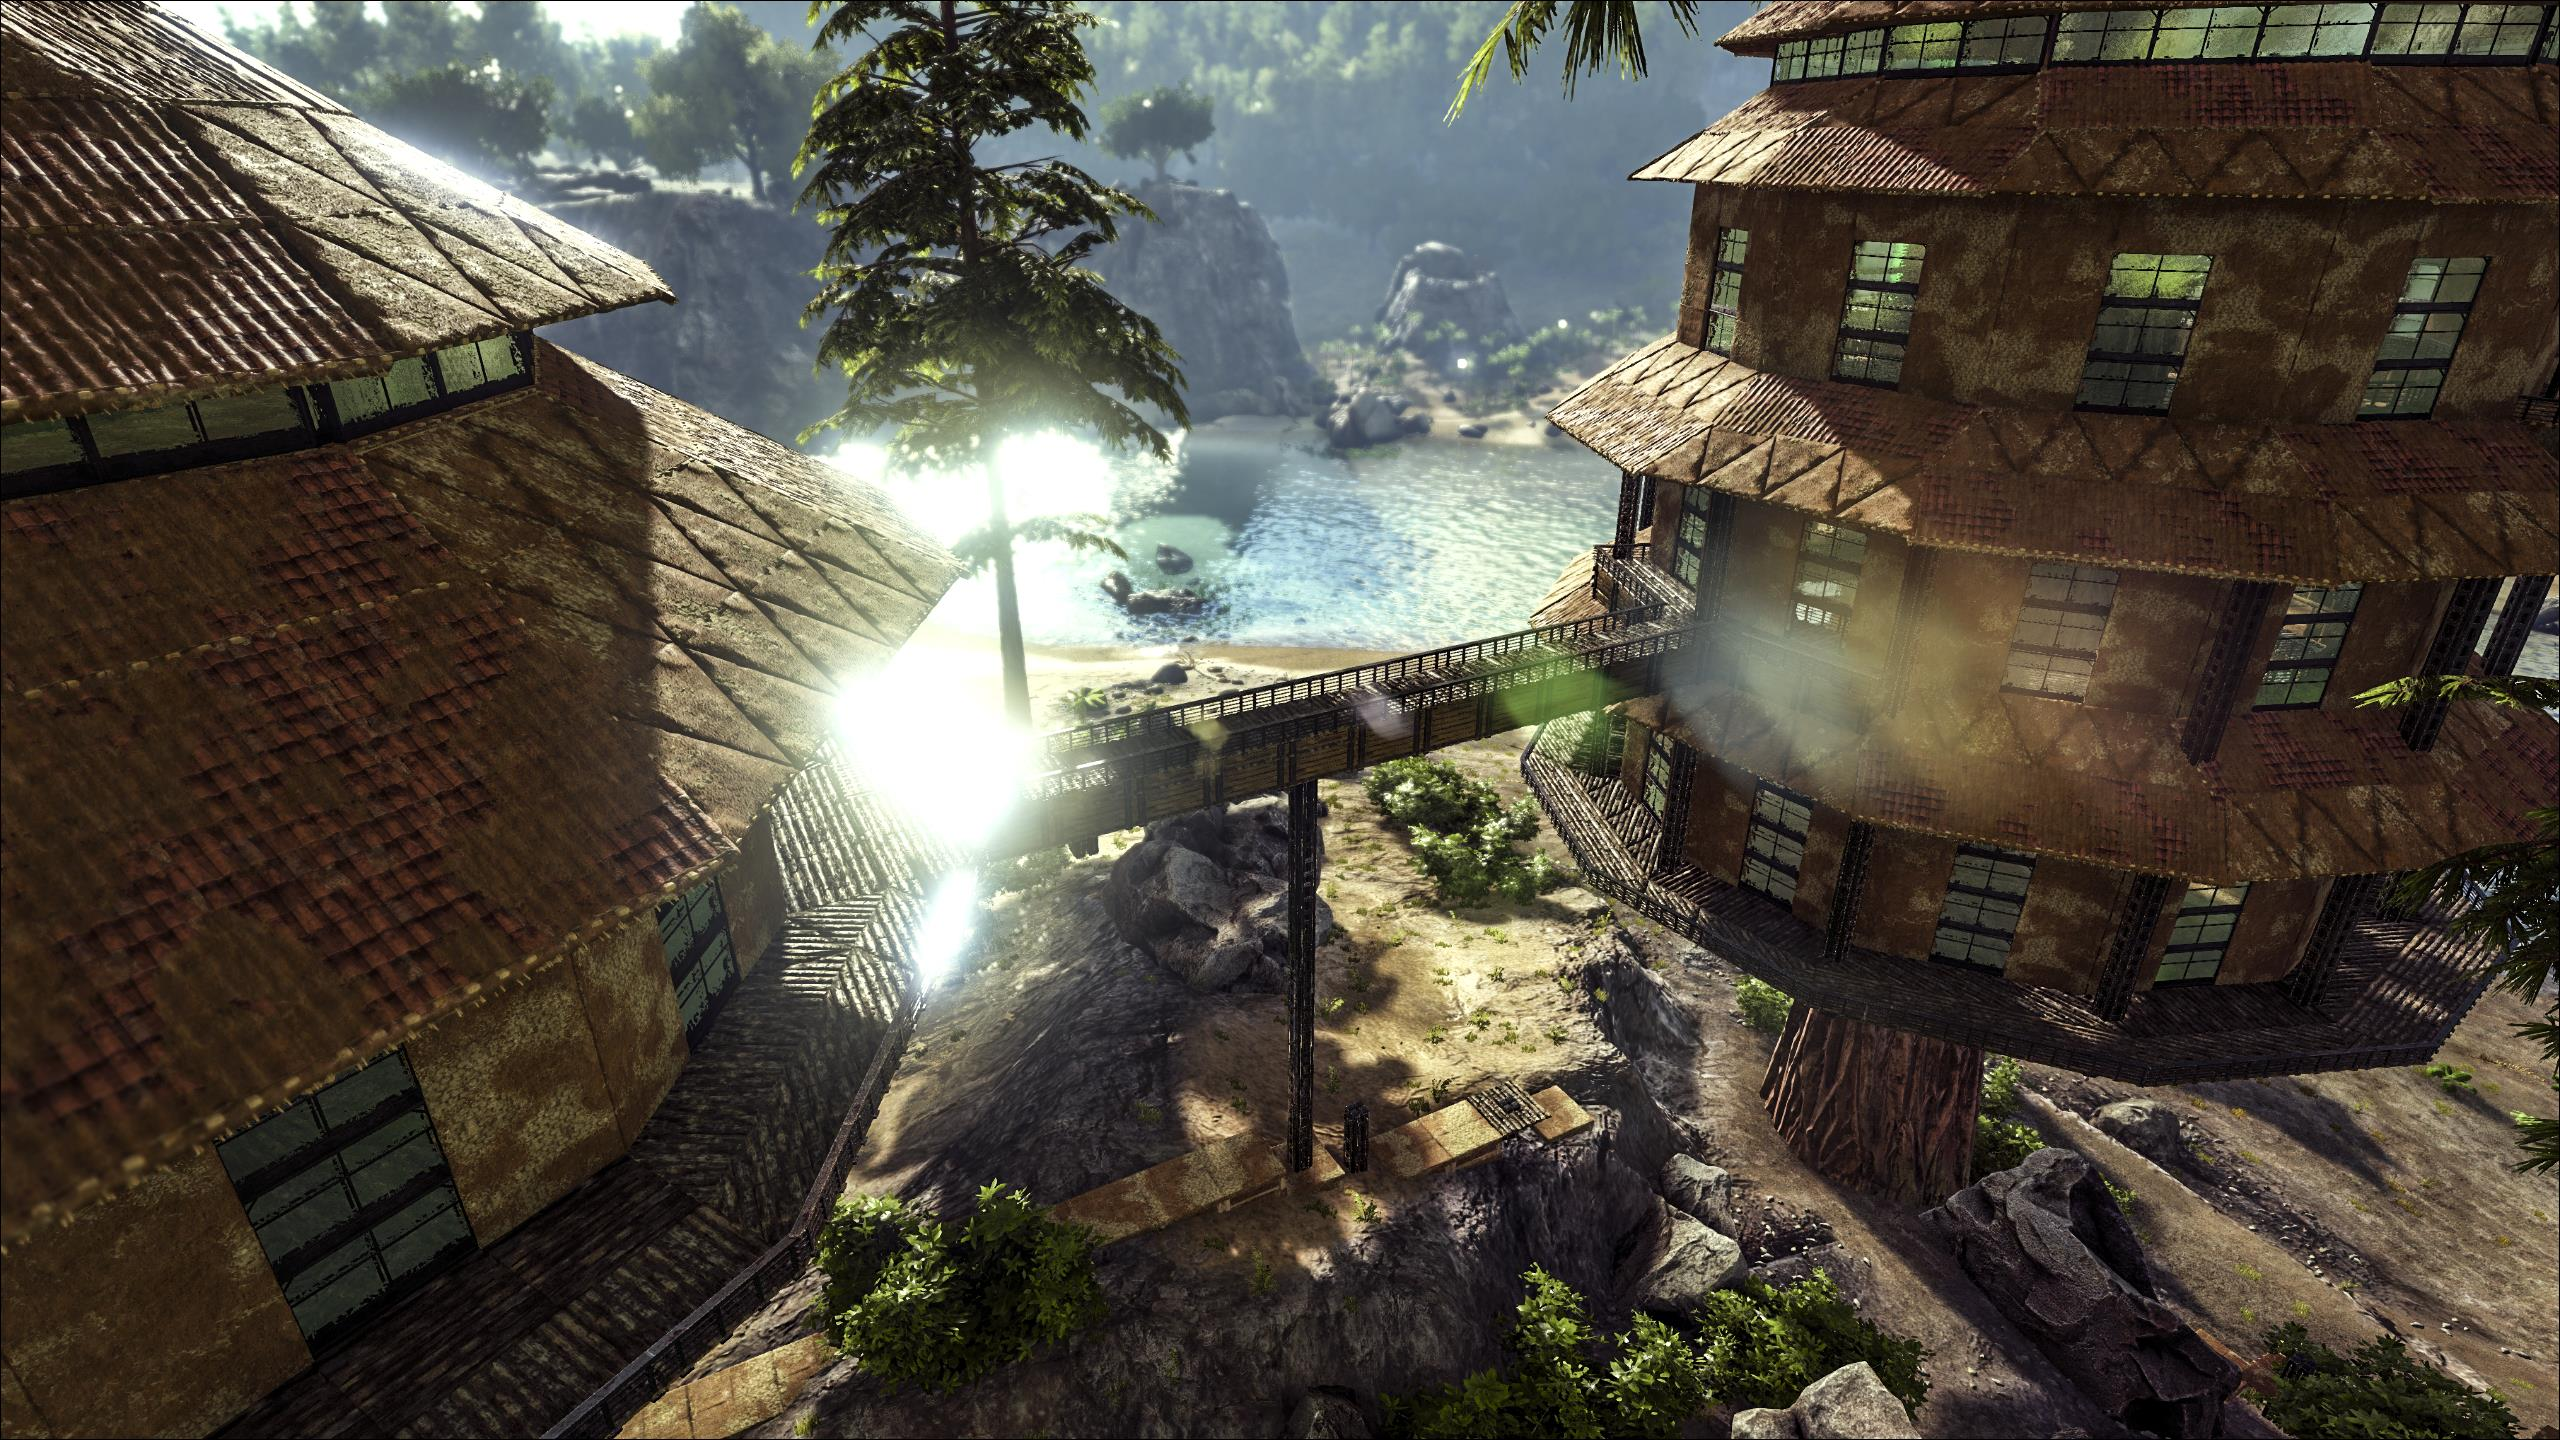 ARK's Homestead update introduces new building pieces